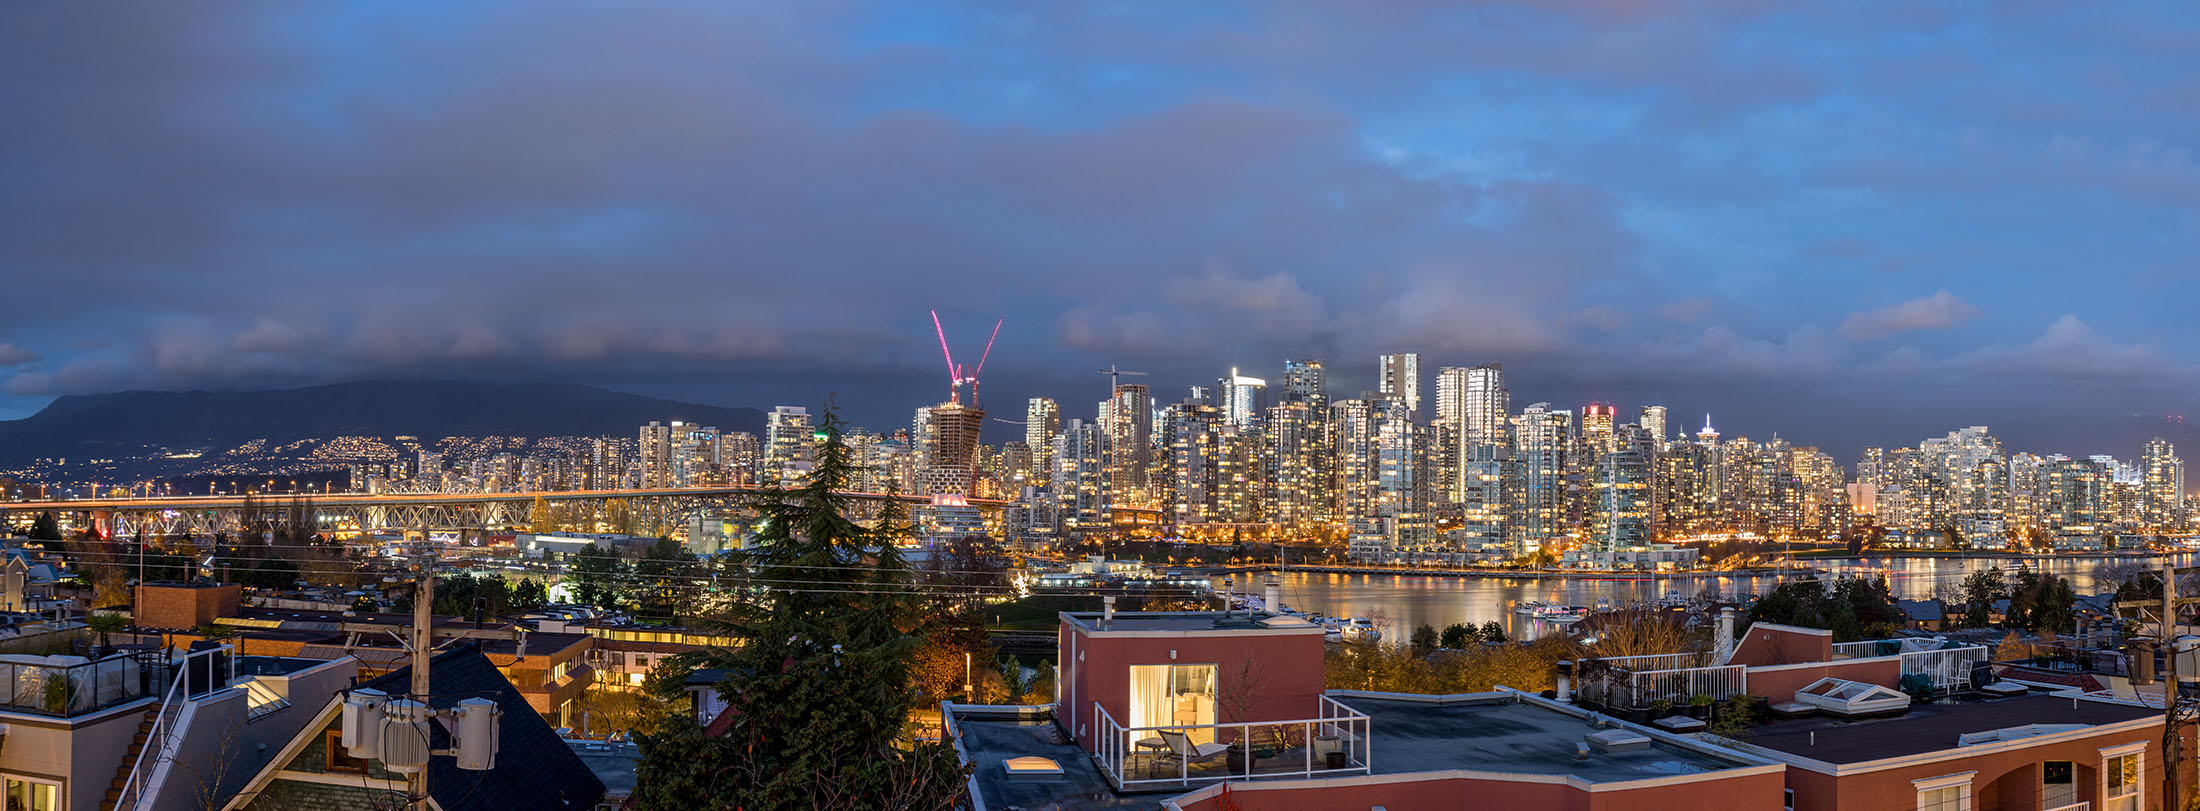 View from the roof deck - Fairview - 1244 west 7th avenue Vancouver